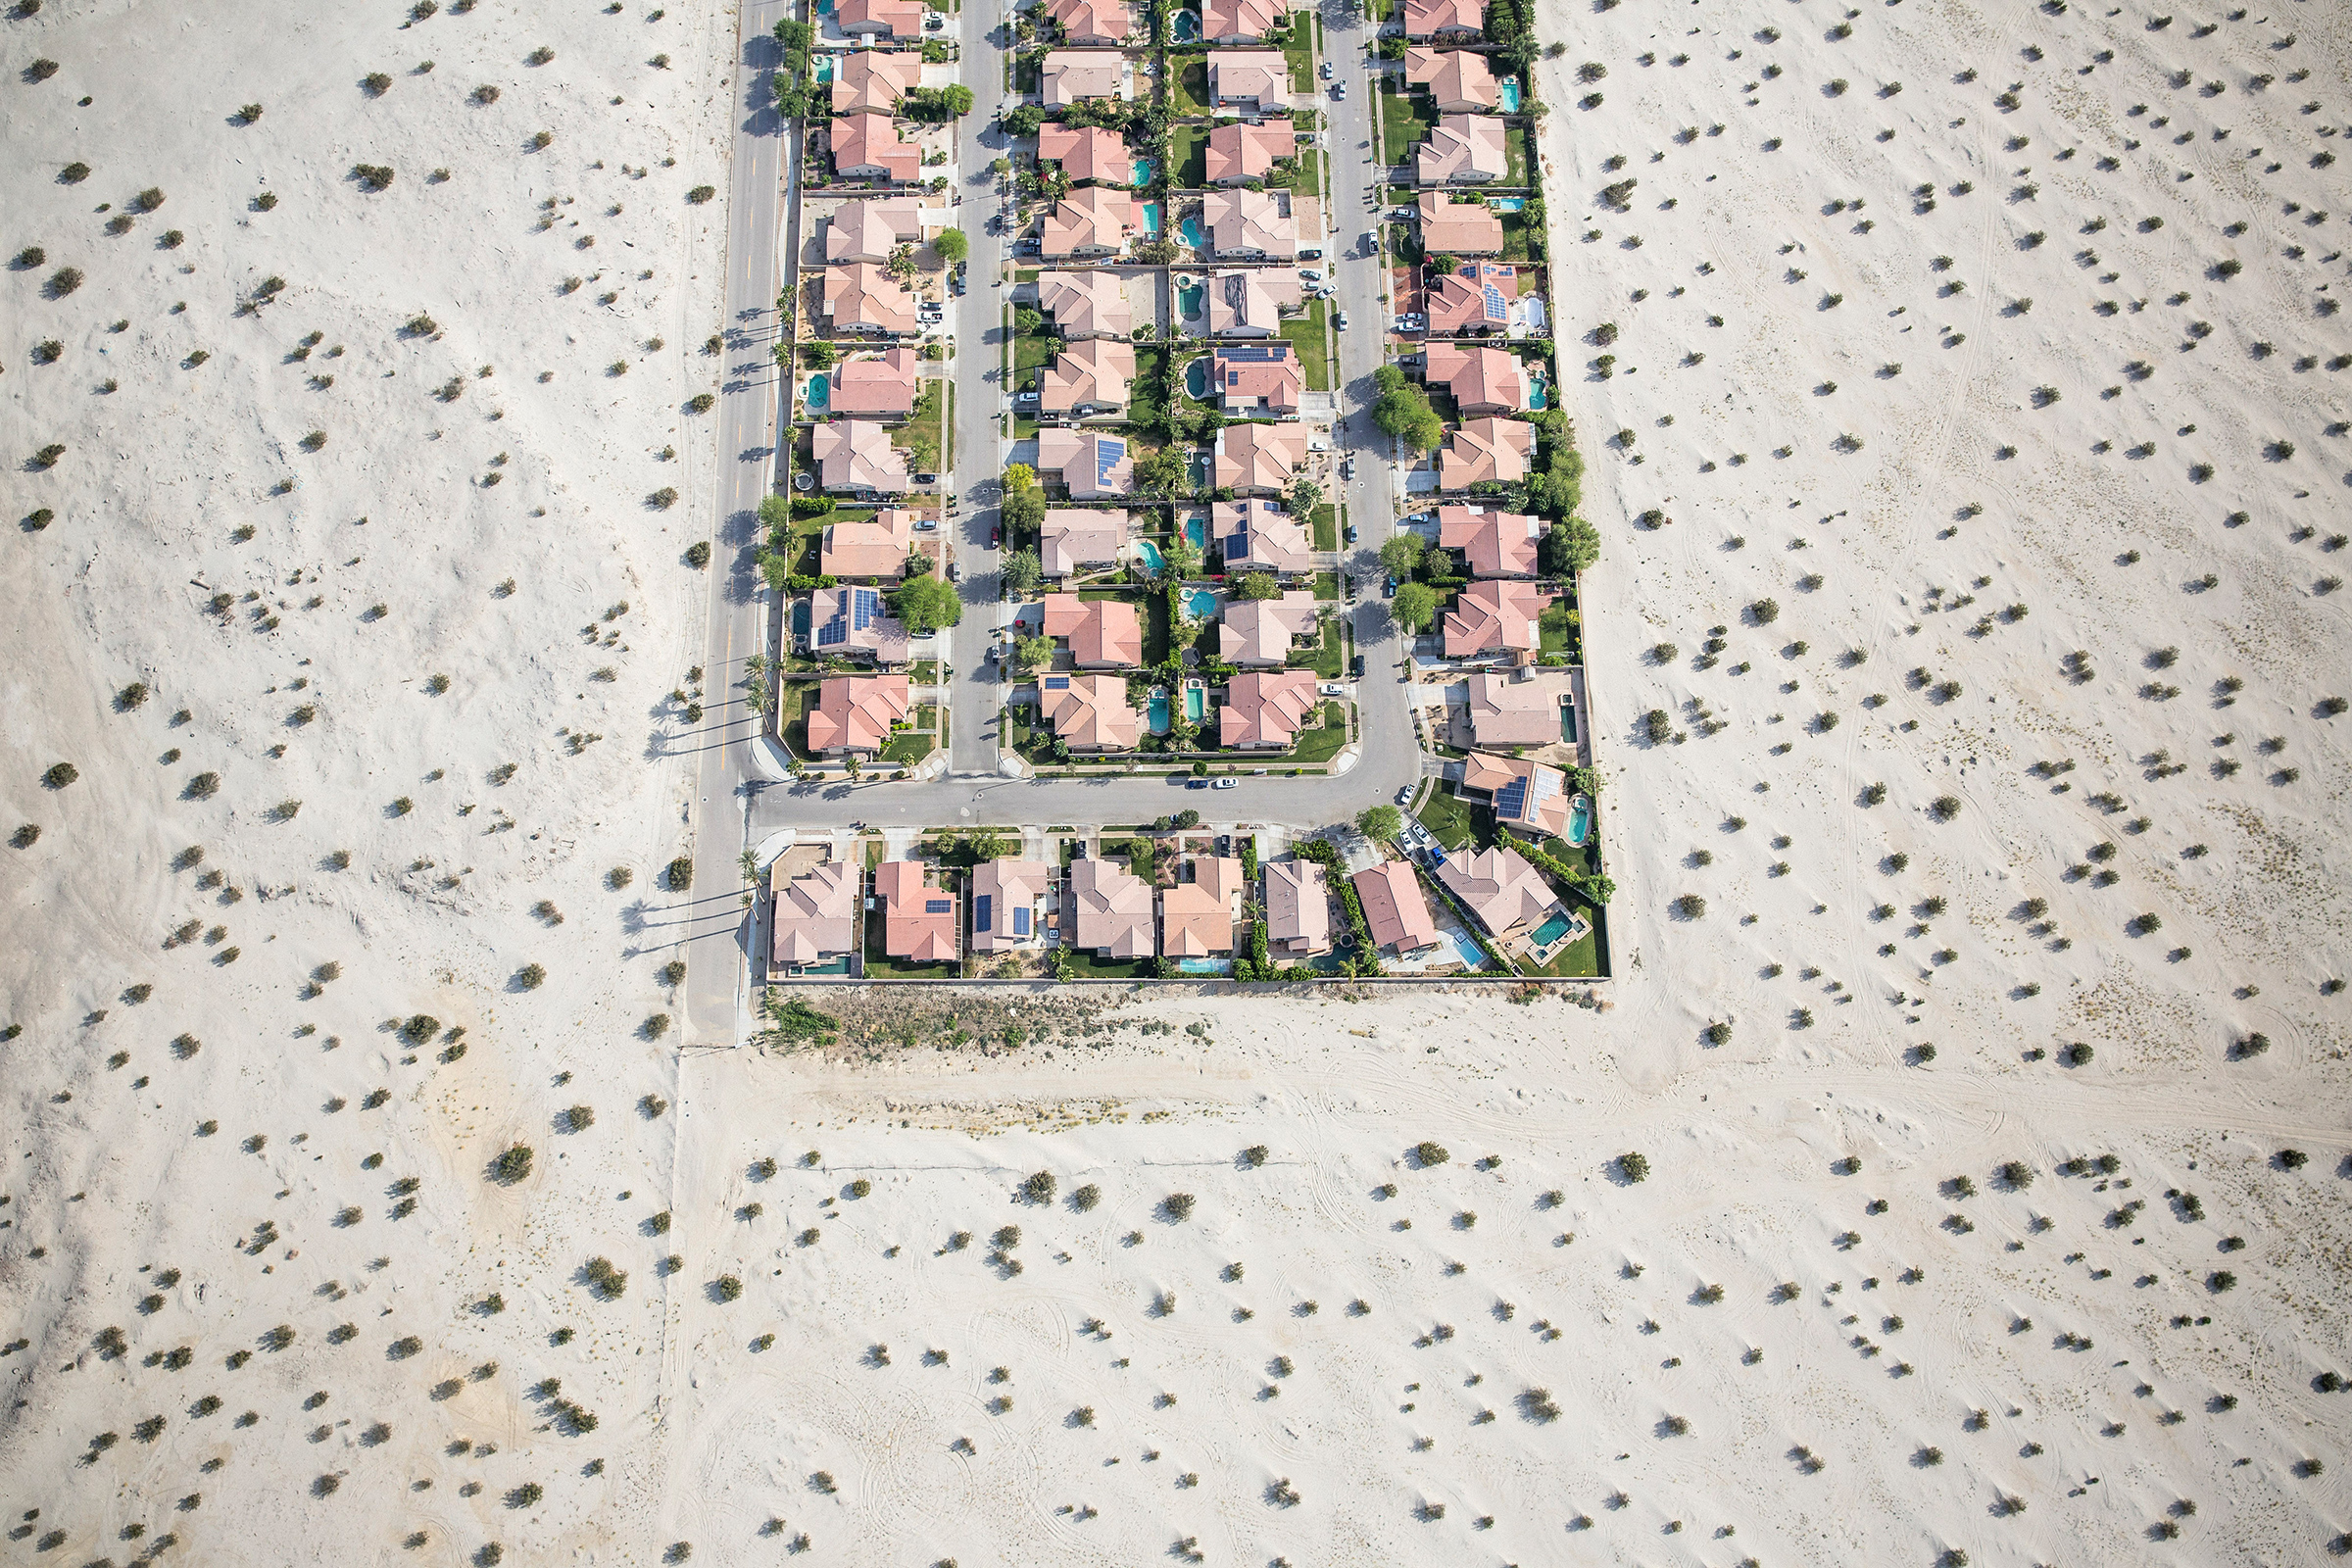 A housing development on the edge of undeveloped desert in Cathedral City, Calif., on April 3, 2015, during the state's punishing drought.